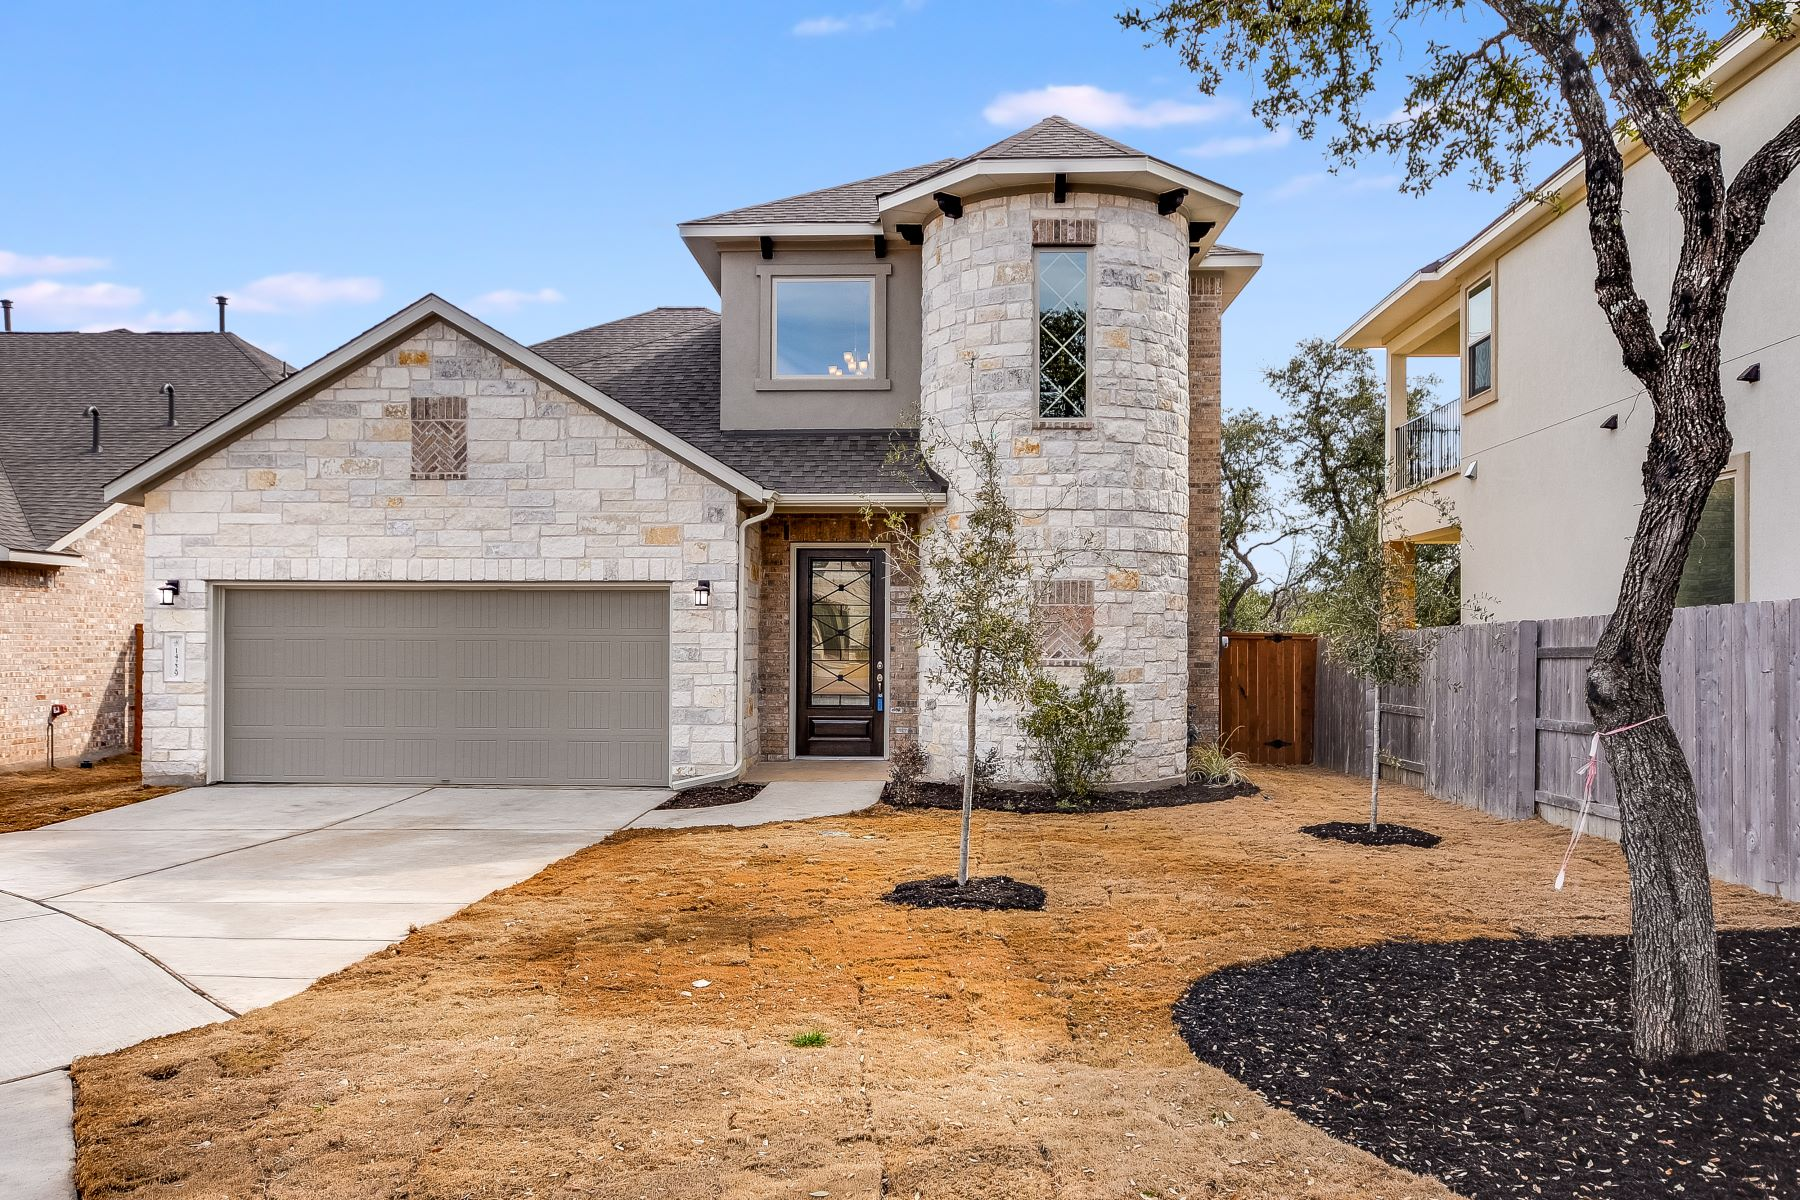 Single Family Home for Sale at Two Story New Construction 14229 Williamsport St, Austin, Texas, 78717 United States